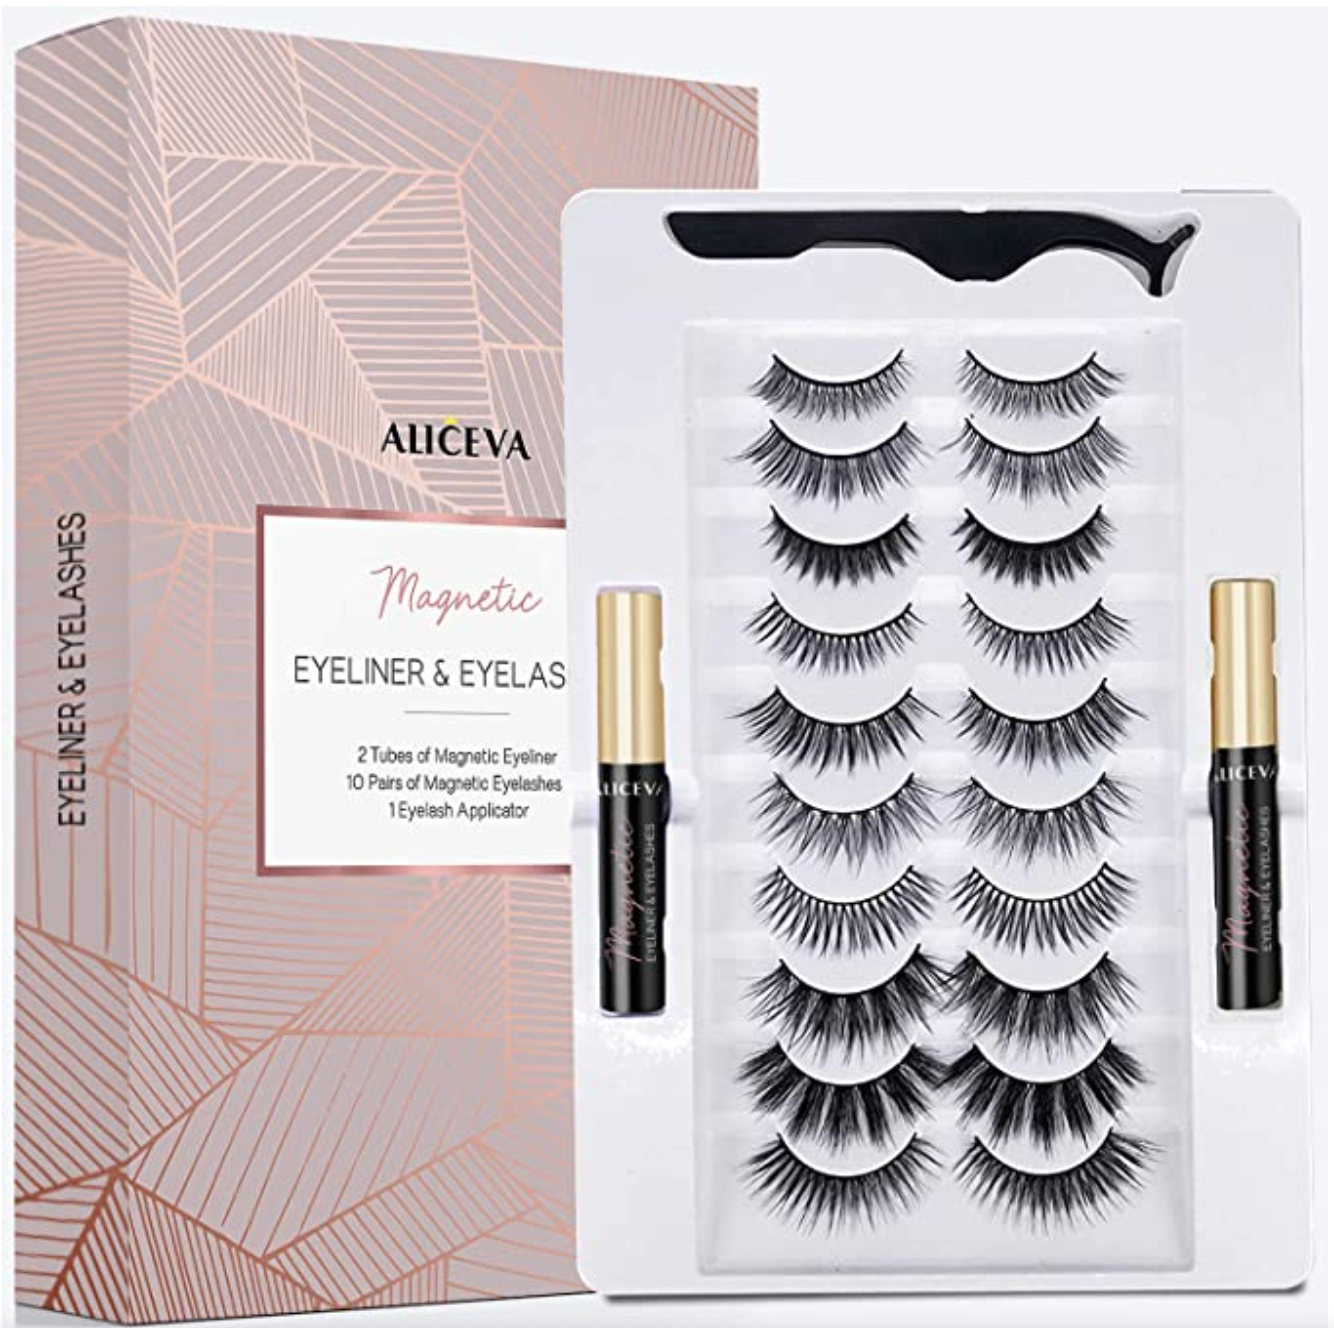 Magnetic Eyeliner and Lashes by Aliceva